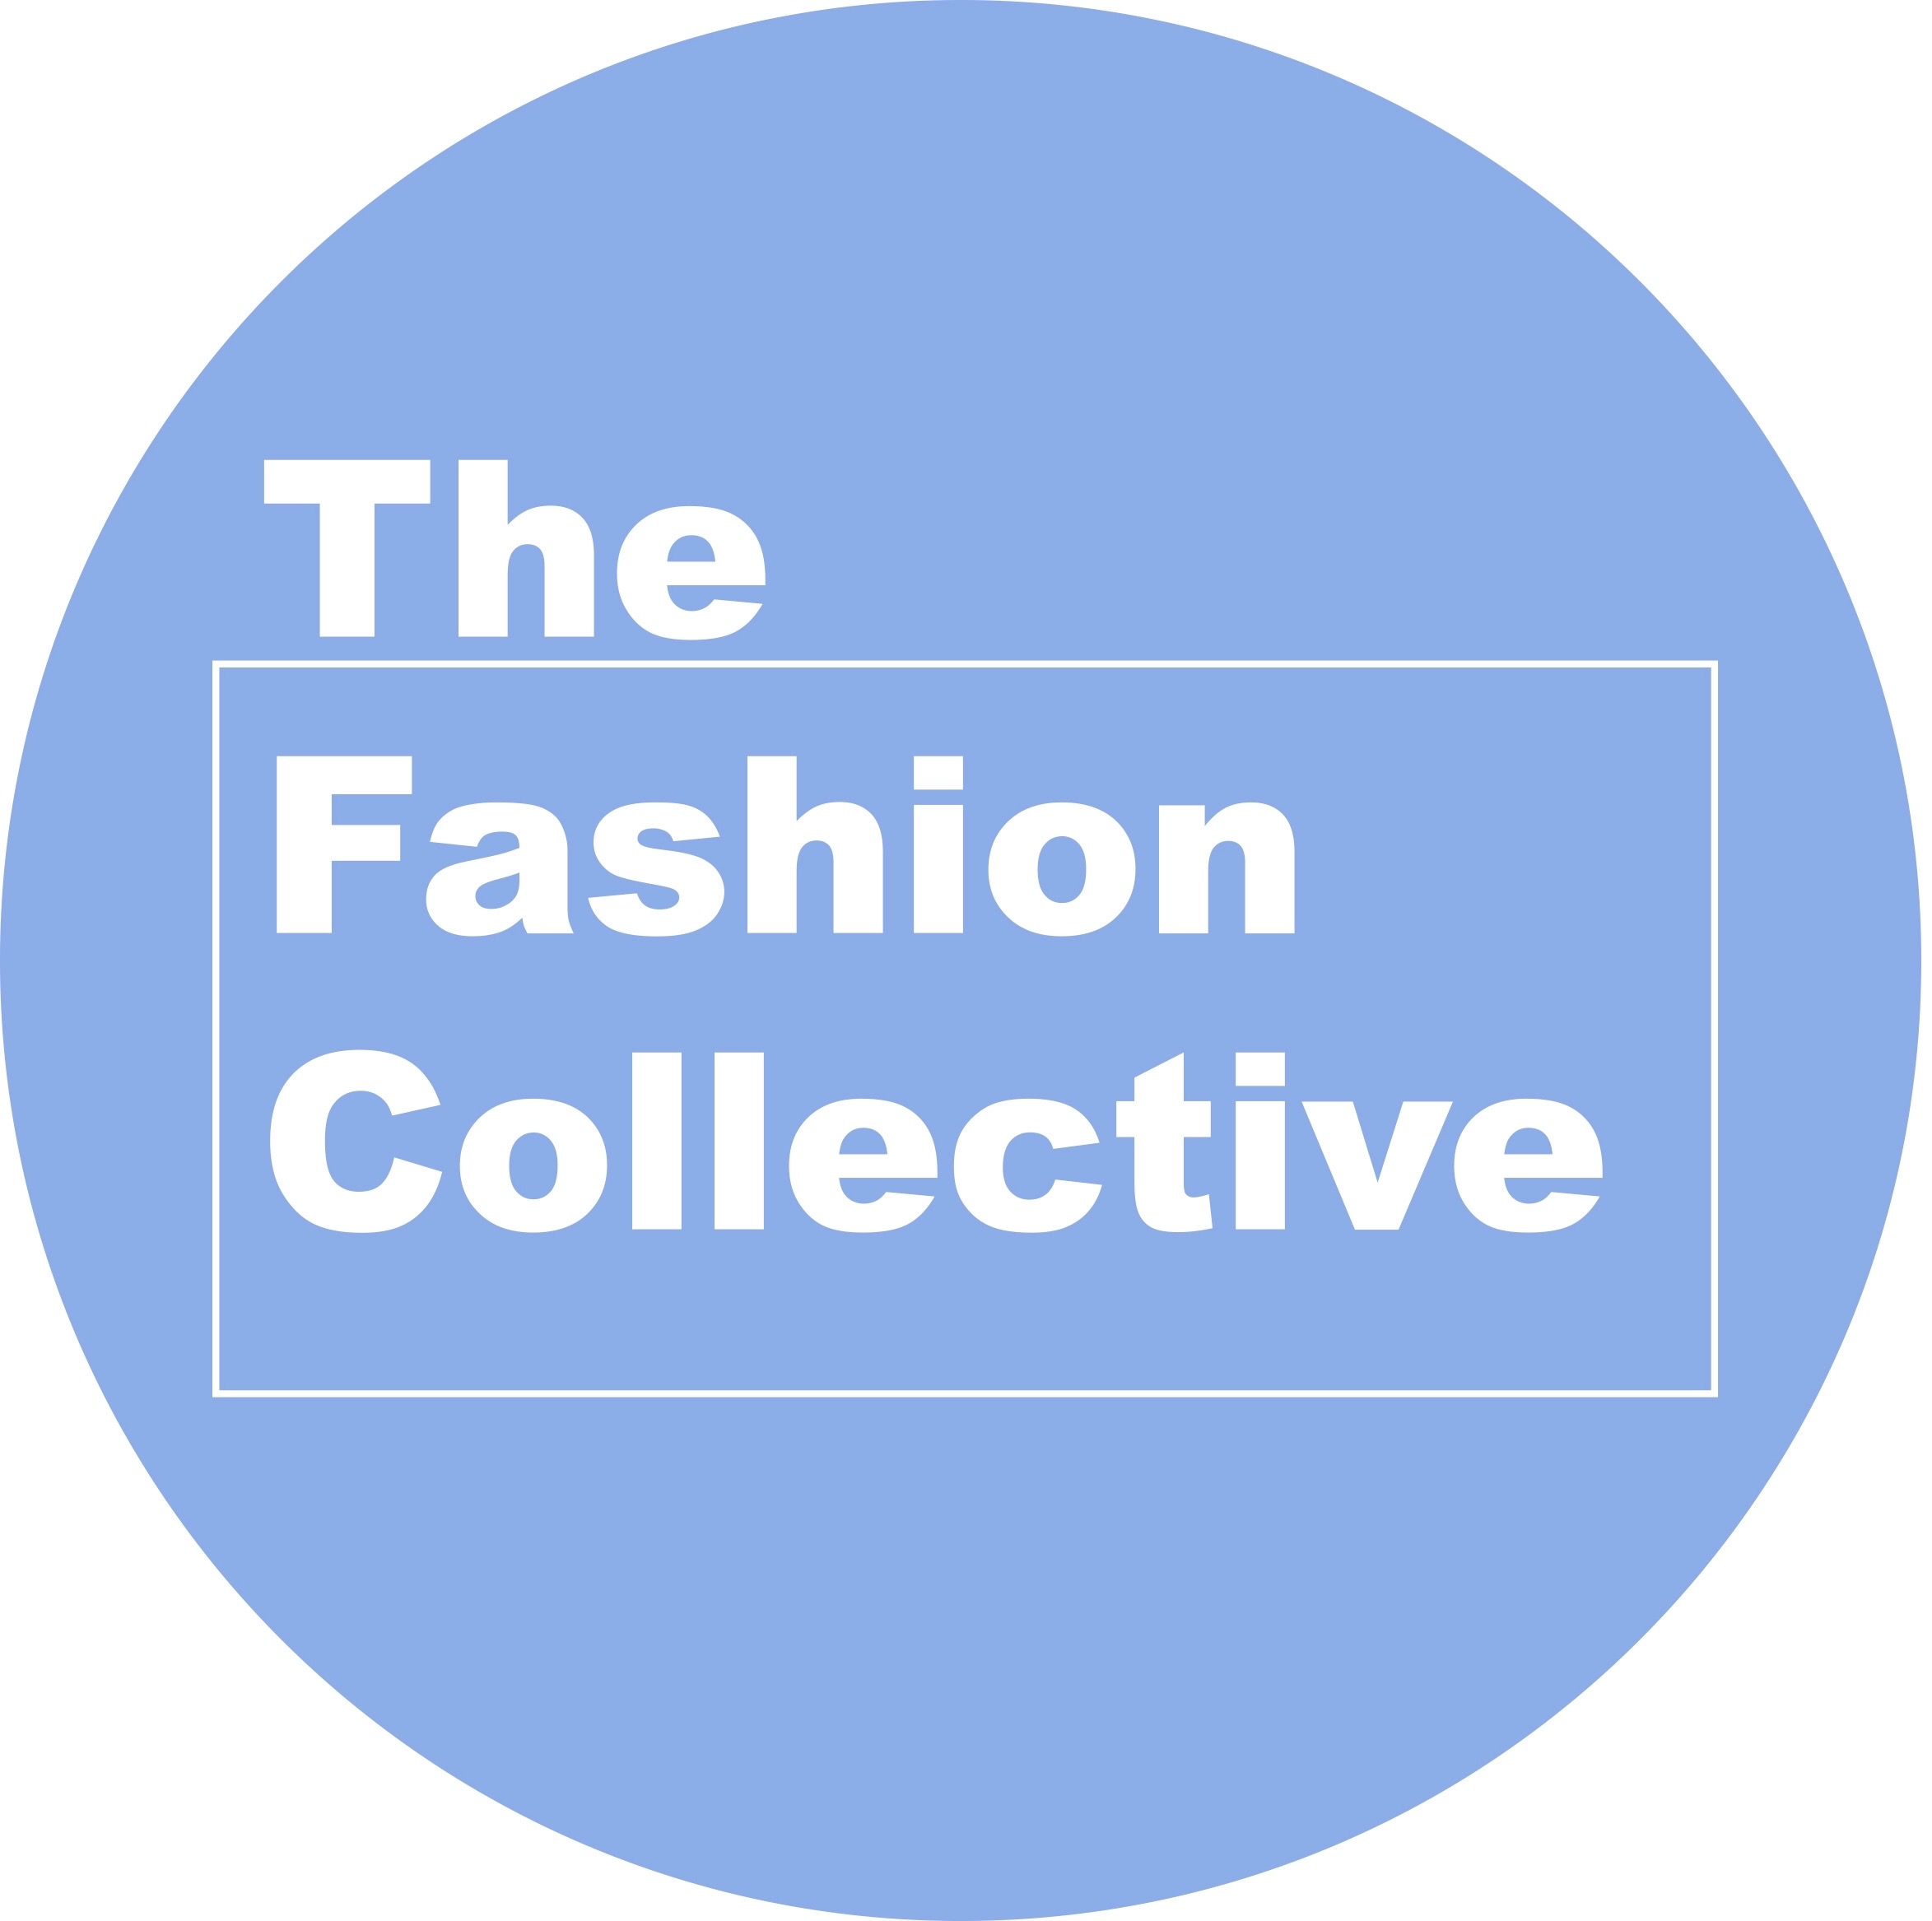 The Fashion Collective logo